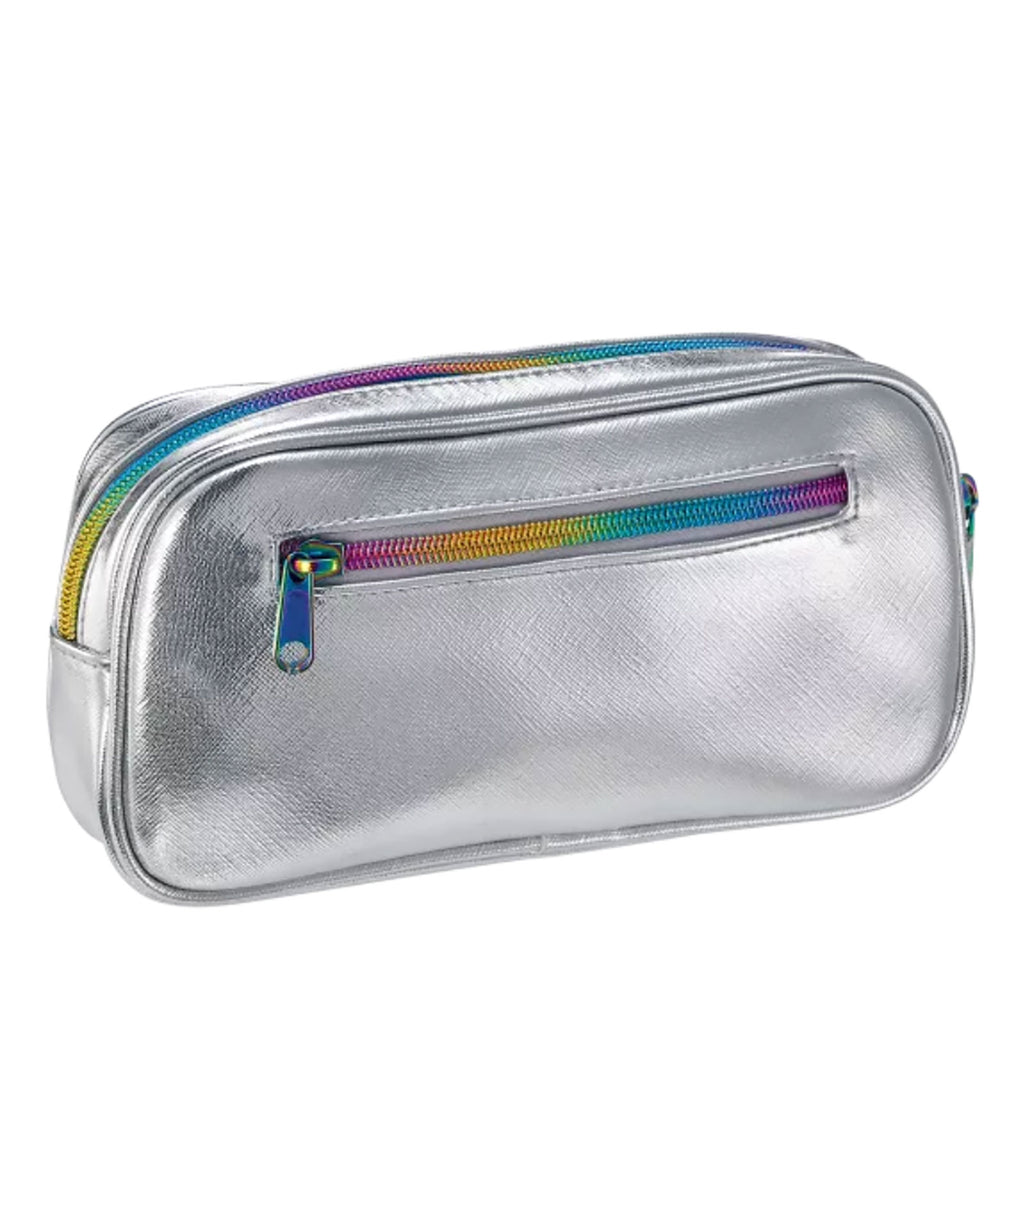 iScream Small Cosmetic Bag Silver